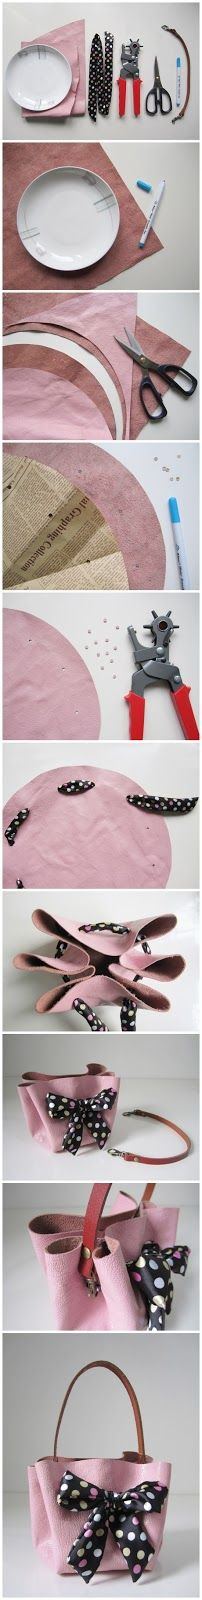 DIY and Crafts picture | DIY and Crafts photos,  Go To www.likegossip.com to get…